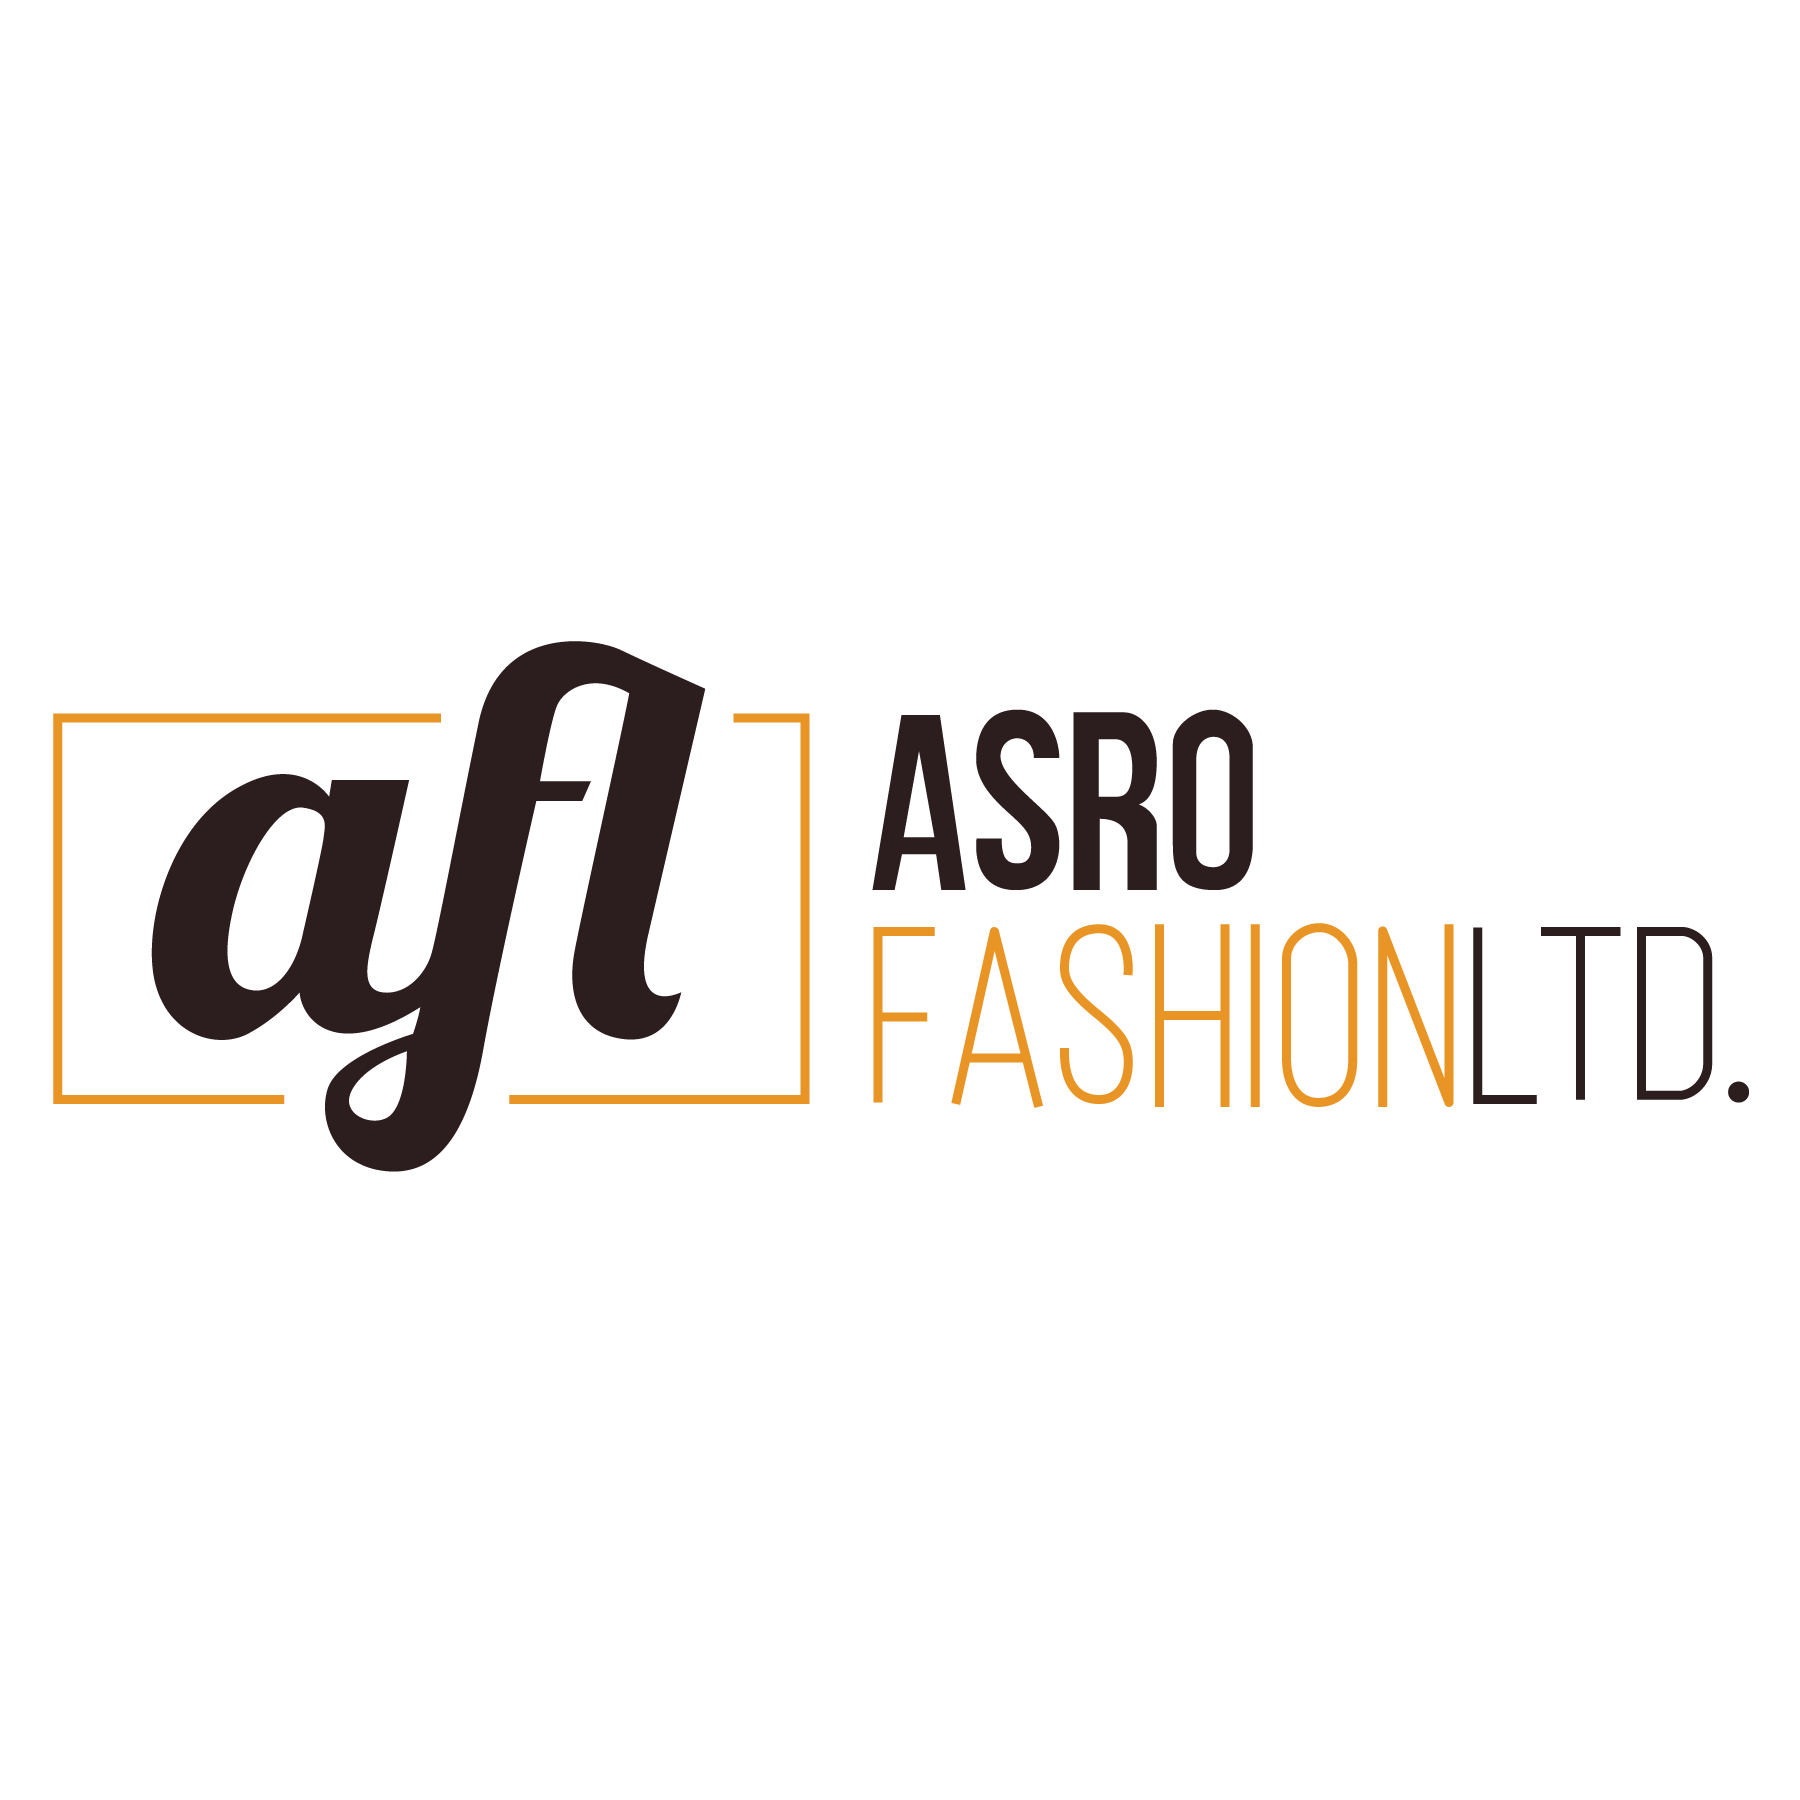 www.asrofashion.com